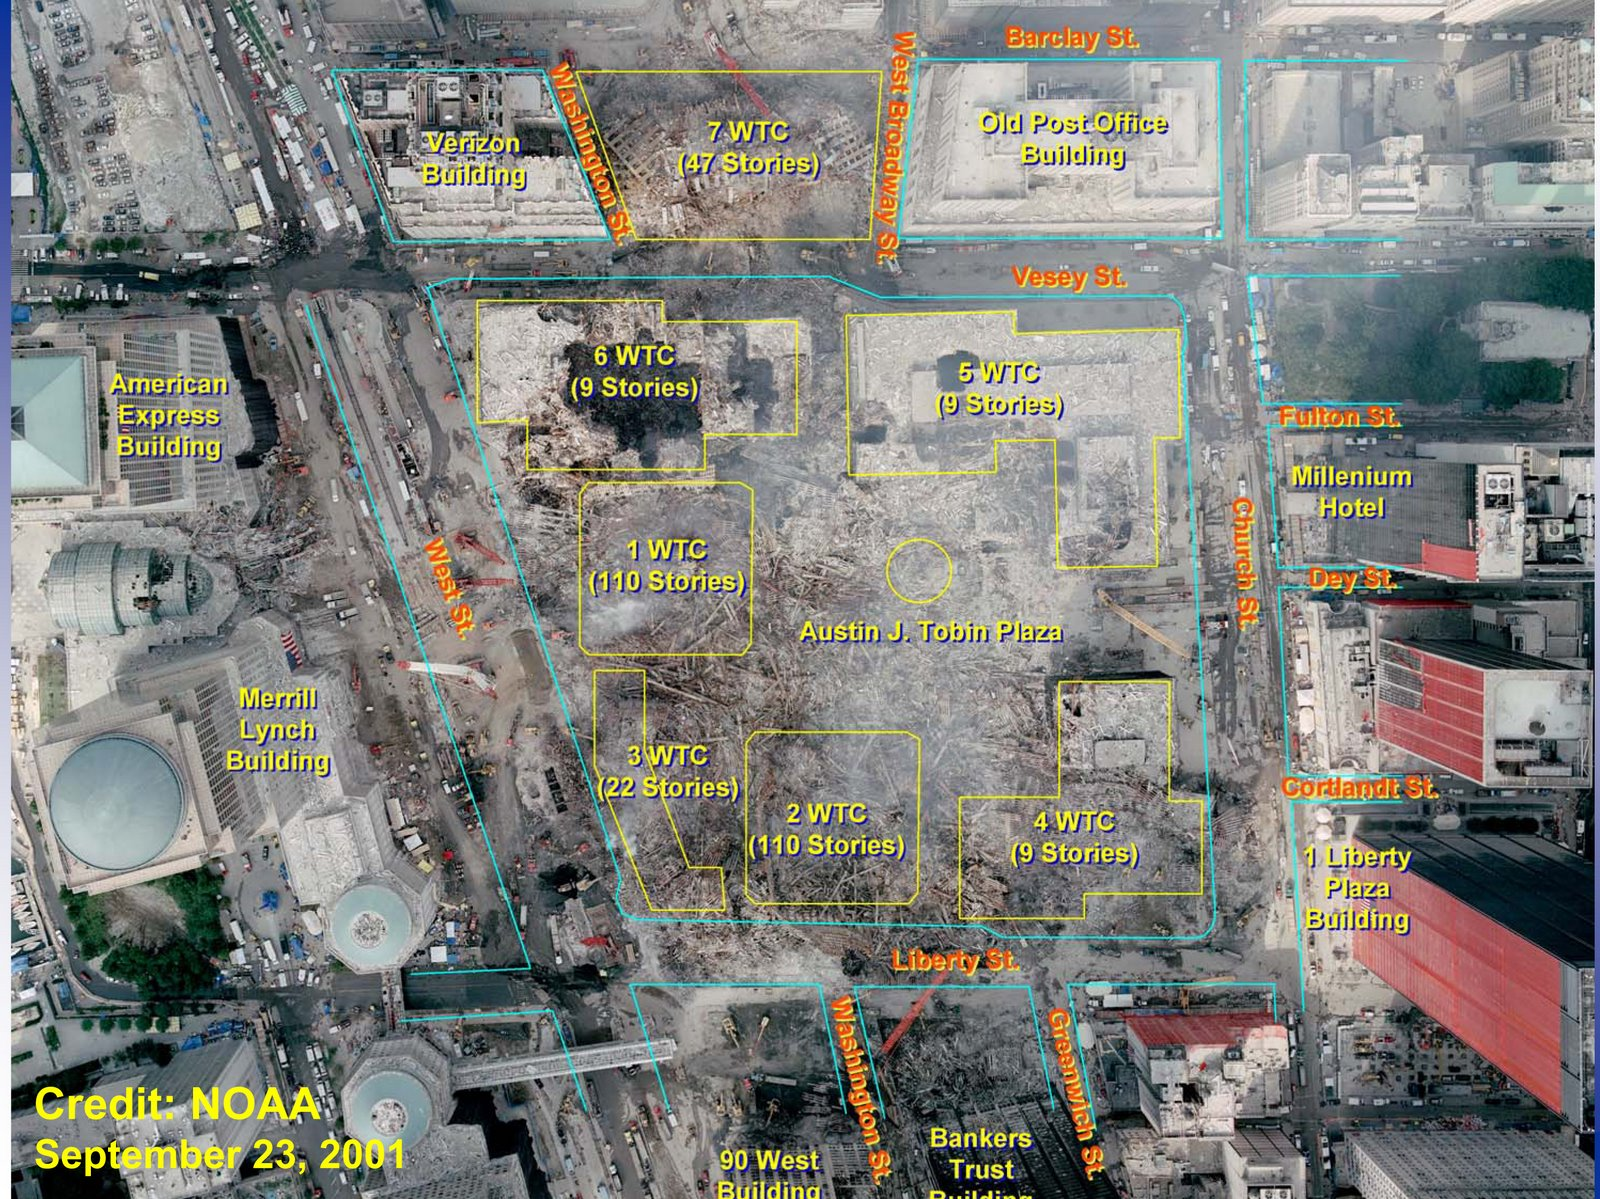 [World_Trade_Center_Site_After_9-11_Attacks_With_Original_Building_Locations.jpg]